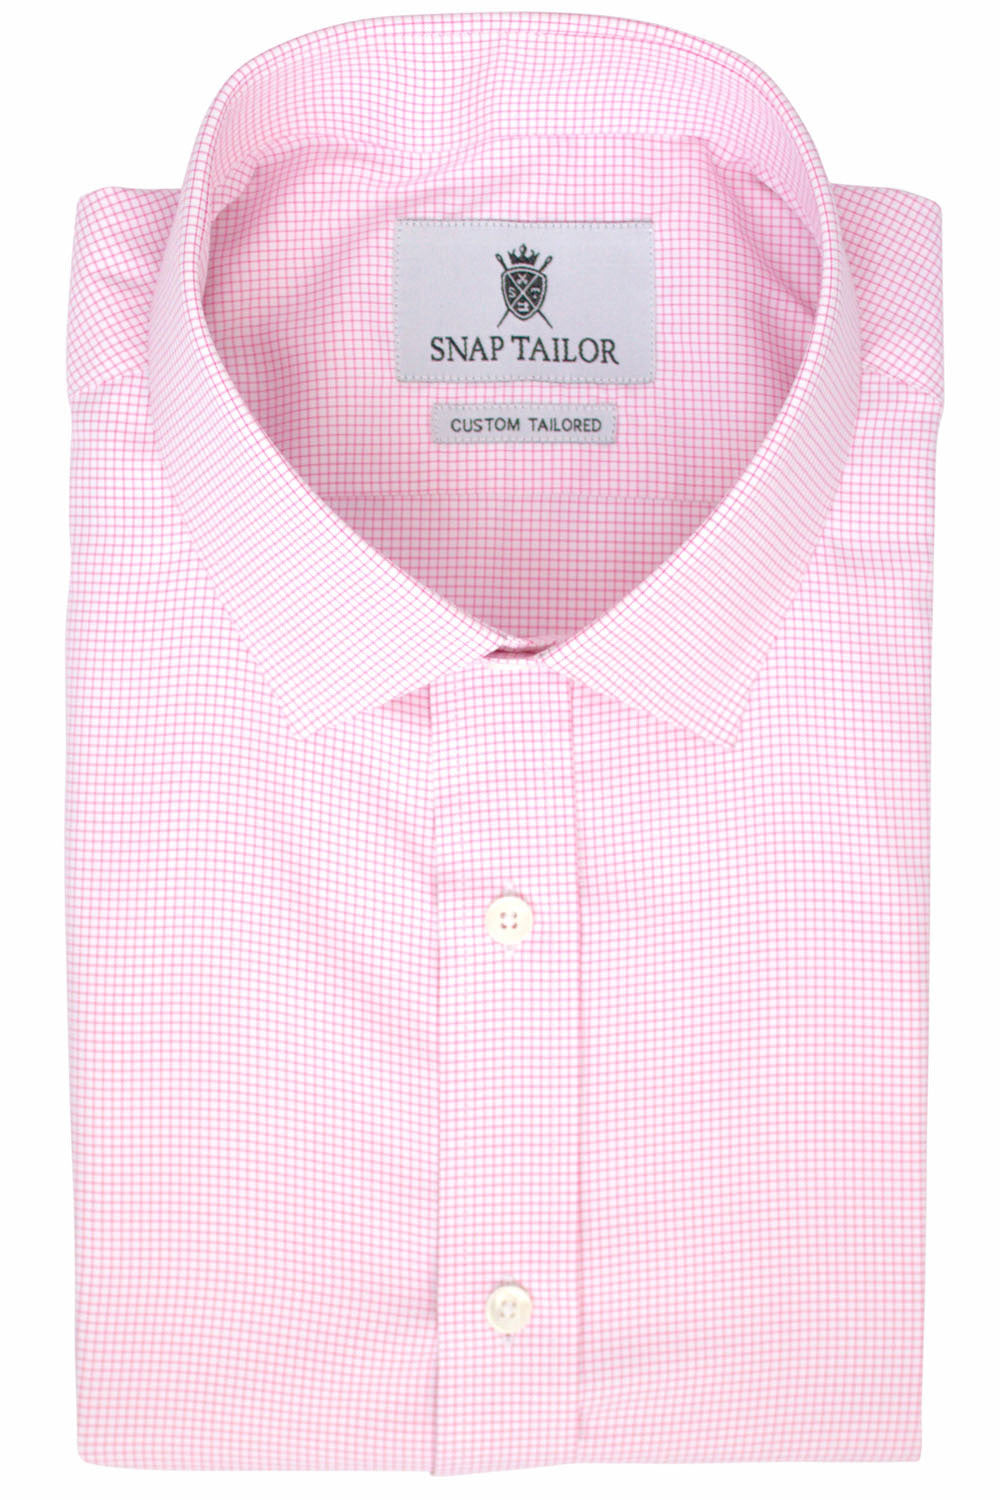 Photo of the Pinpoint Oxford Grid Dress Shirt in Pink